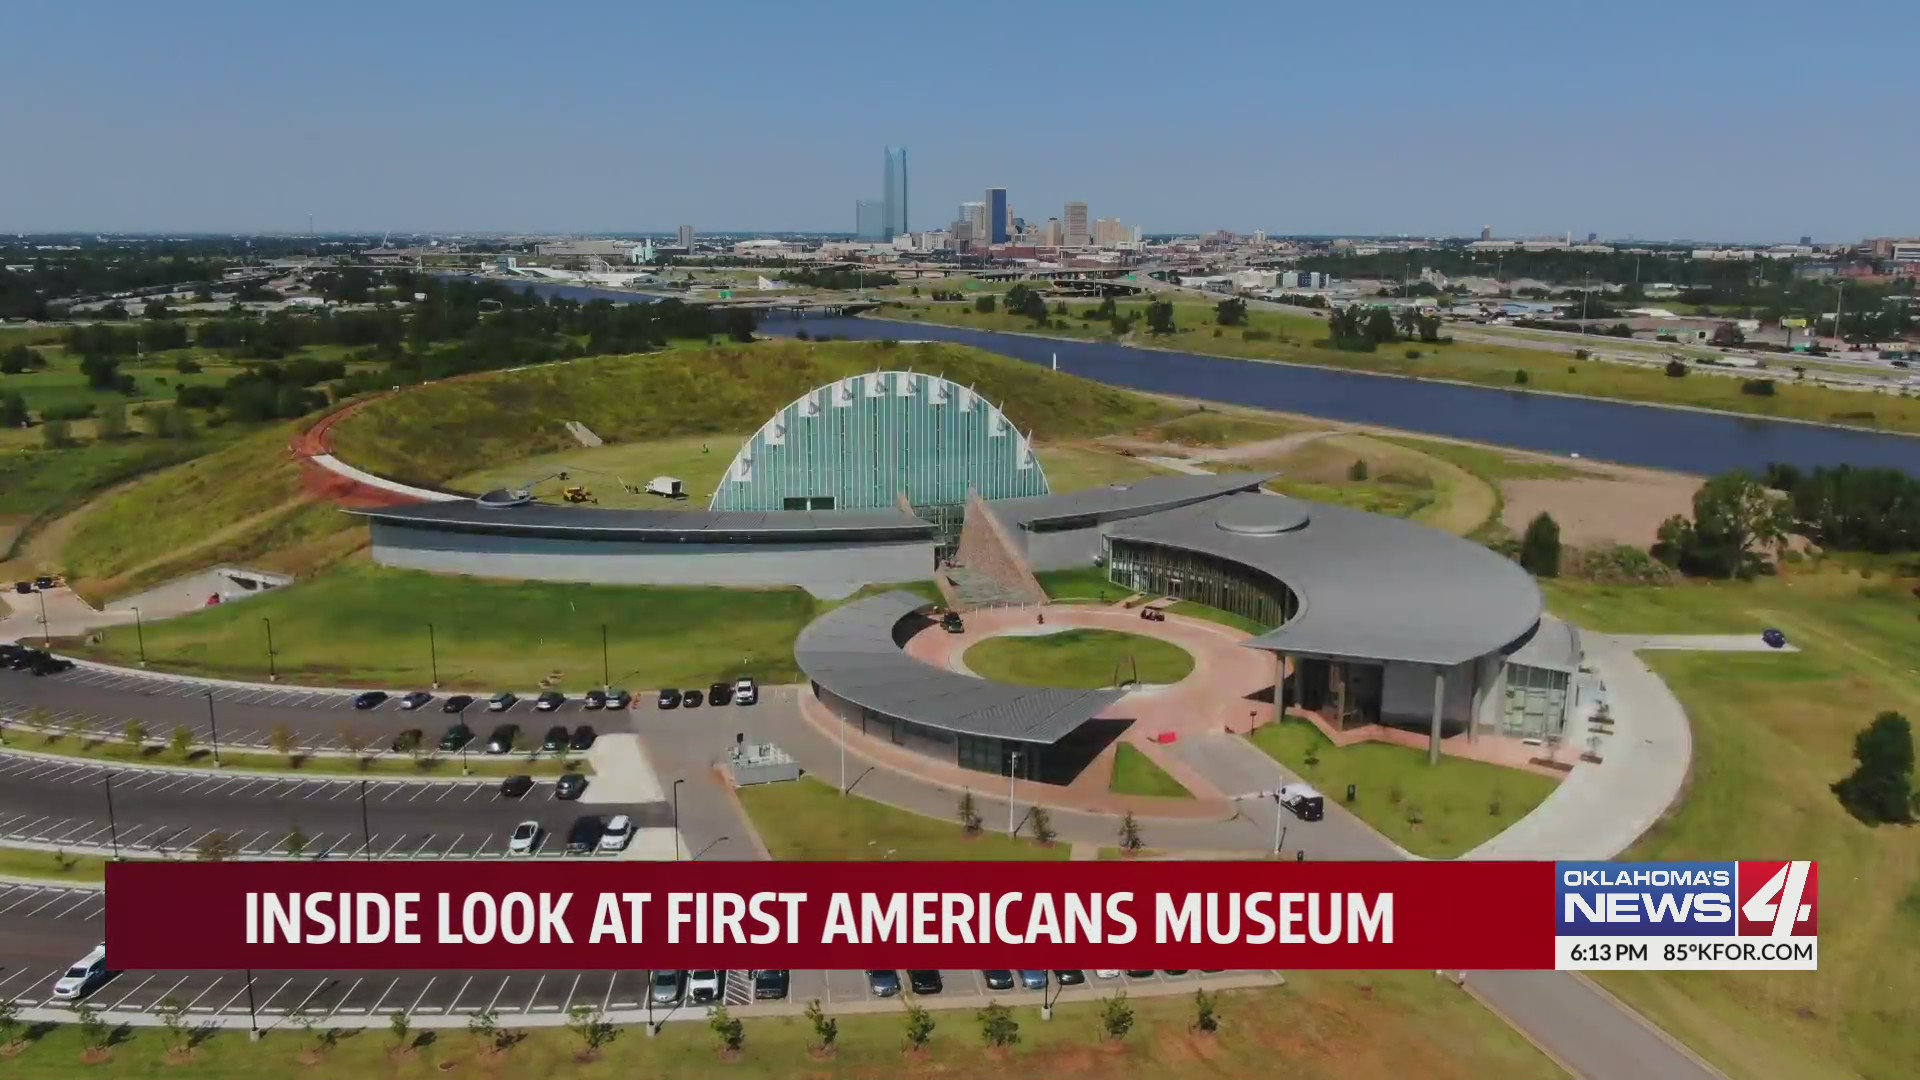 Aerial shot of the First Americans Museum at I-35 and I-40 in Oklahoma City